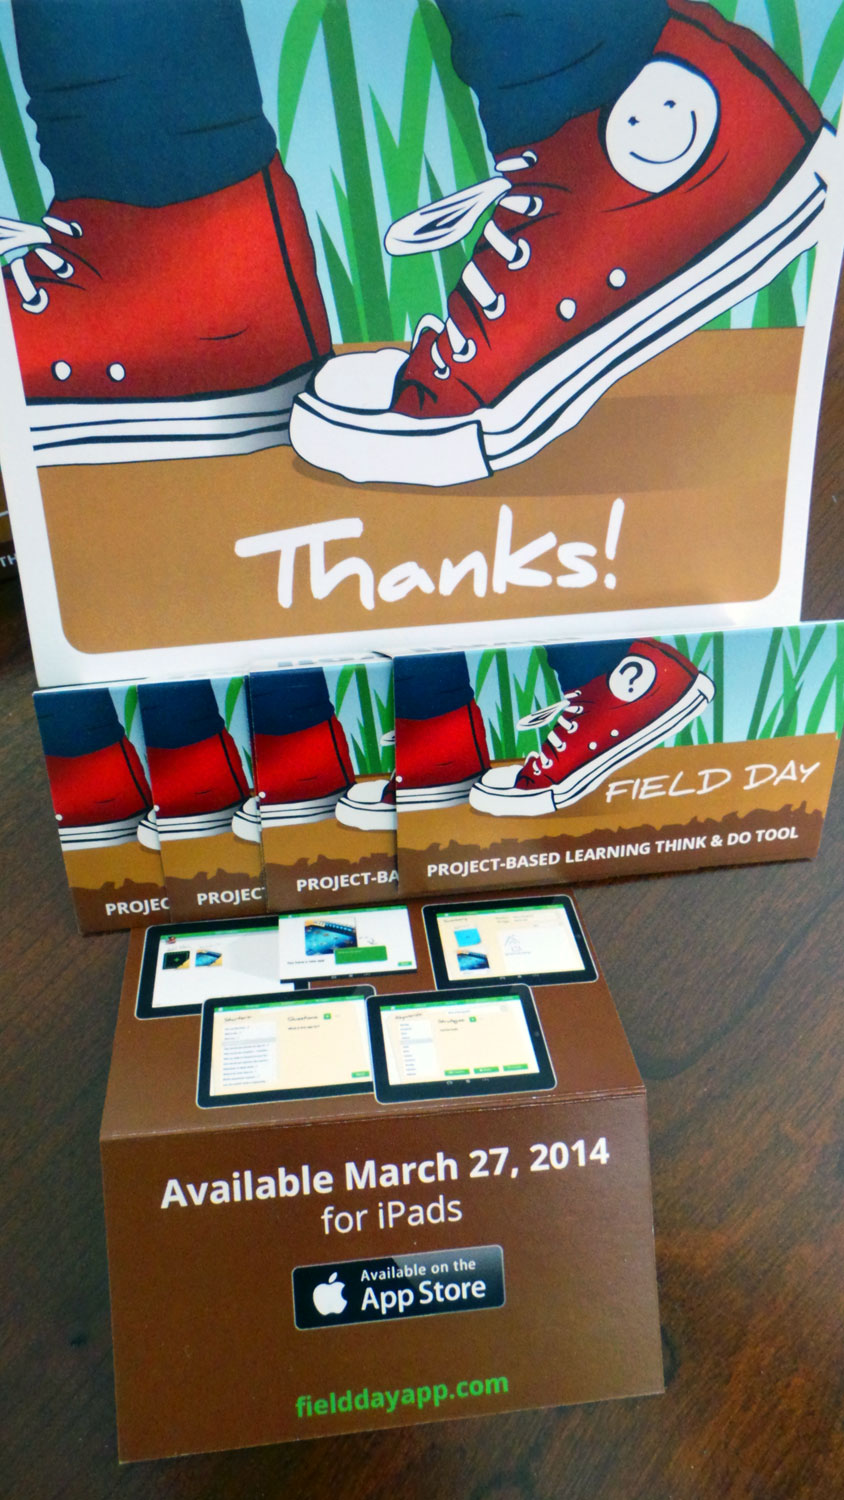 Field Day PBL education app for ipads releases March 27 2014